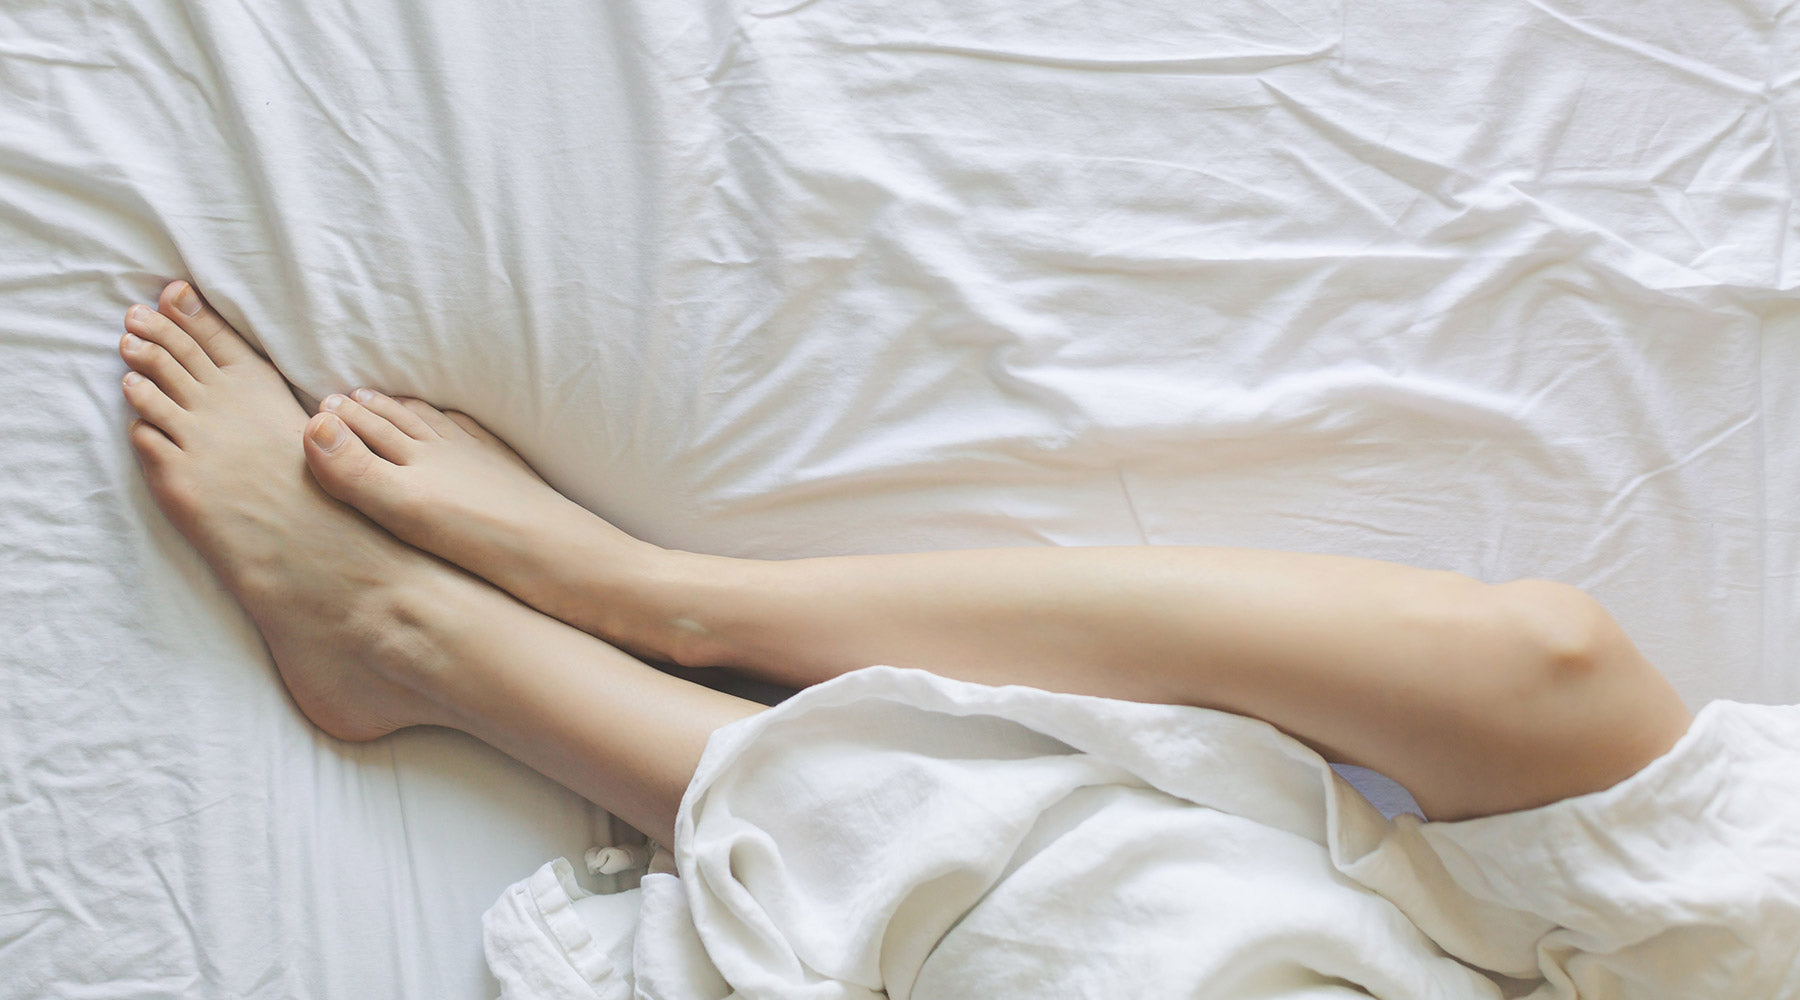 Legs in bed with white sheets